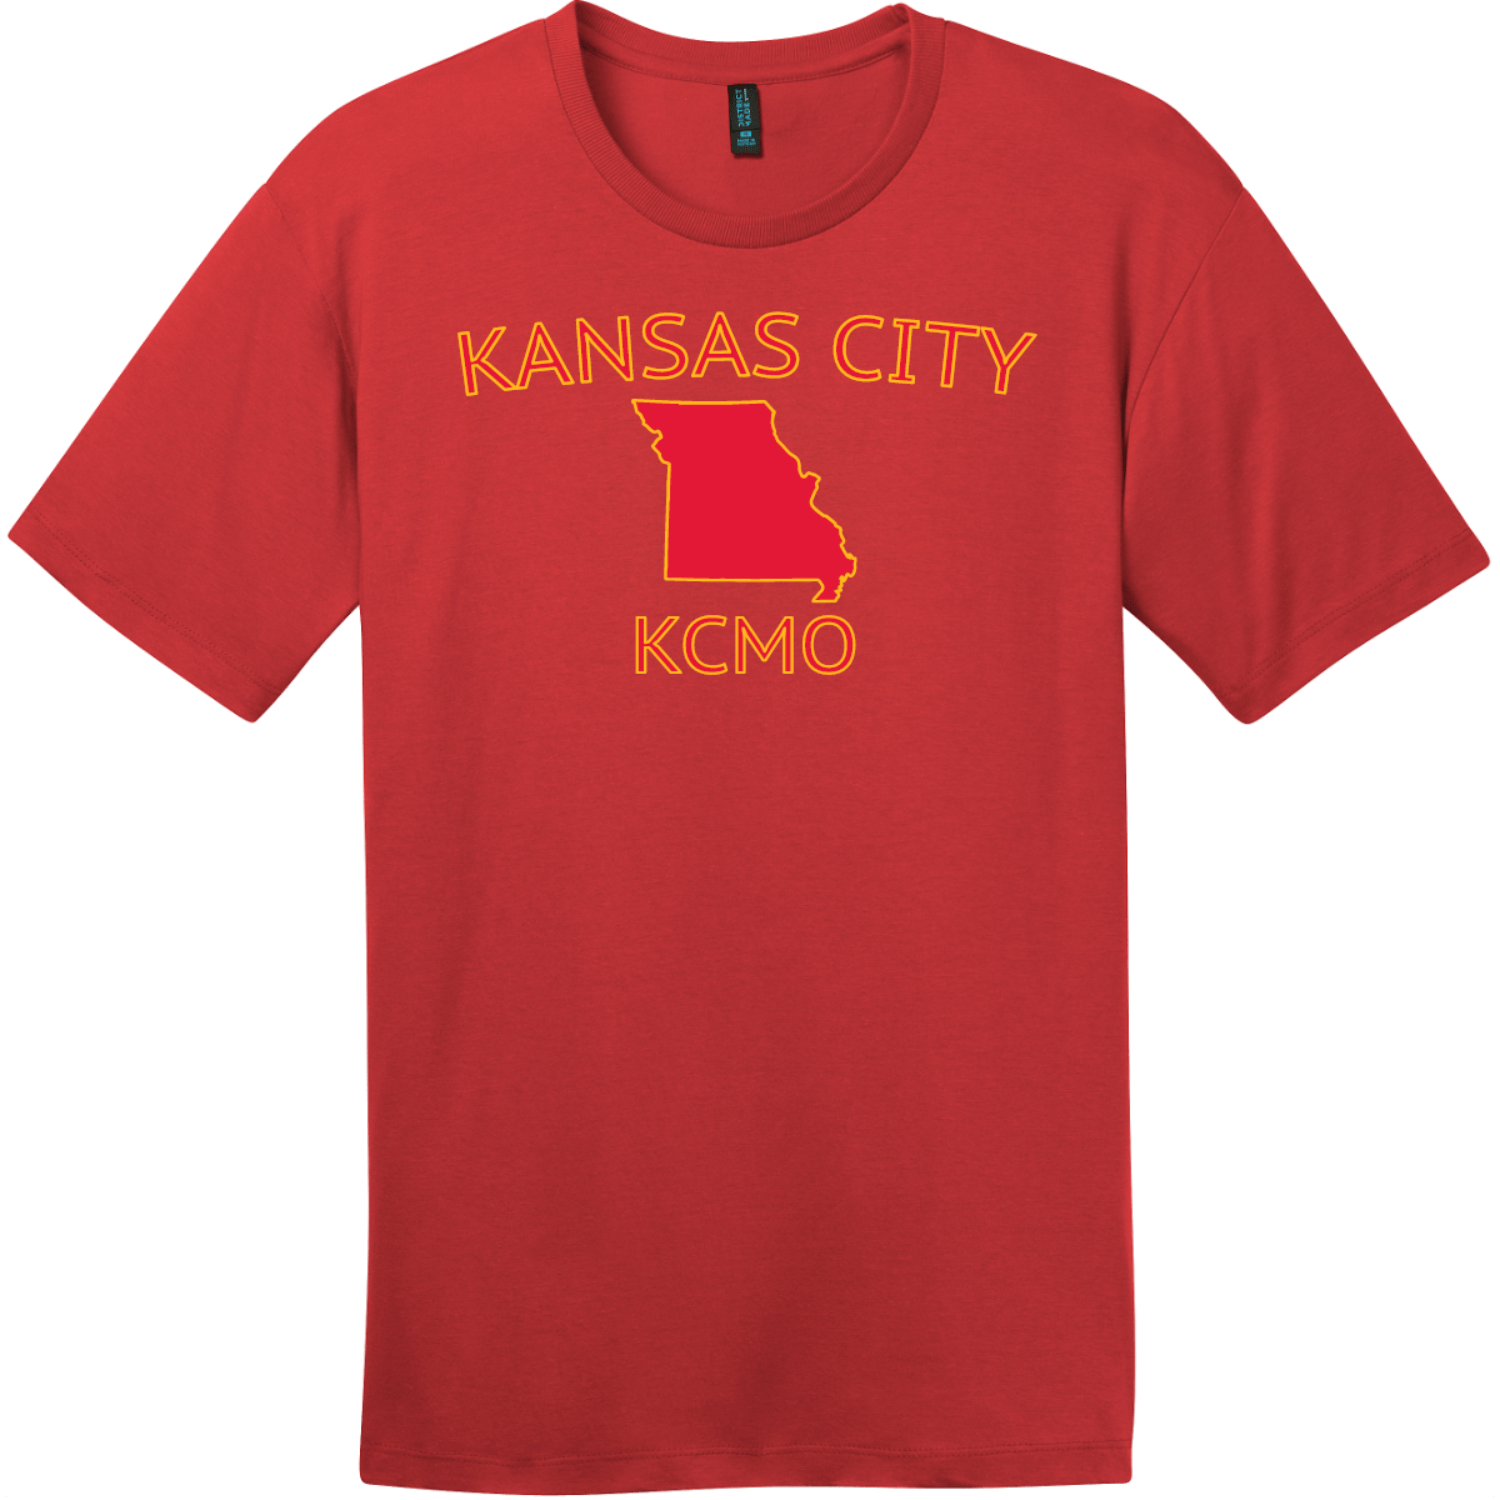 Kansas City KCMO T-Shirt Classic Red District Perfect Weight Tee DT104